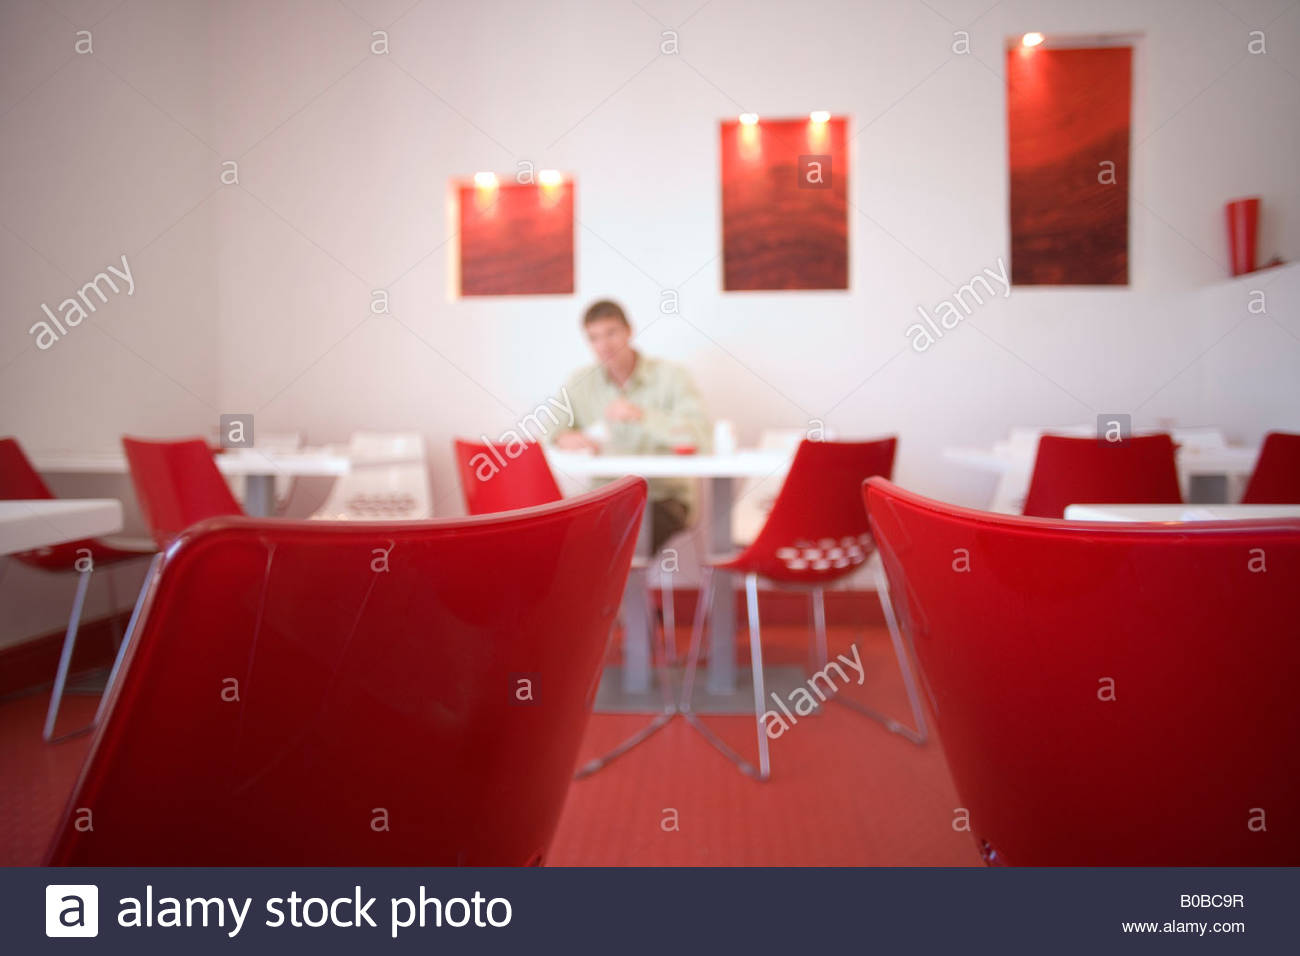 L'homme assis à table dans un café moderne avec un décor rouge et blanc, l'accent sur table Photo Stock